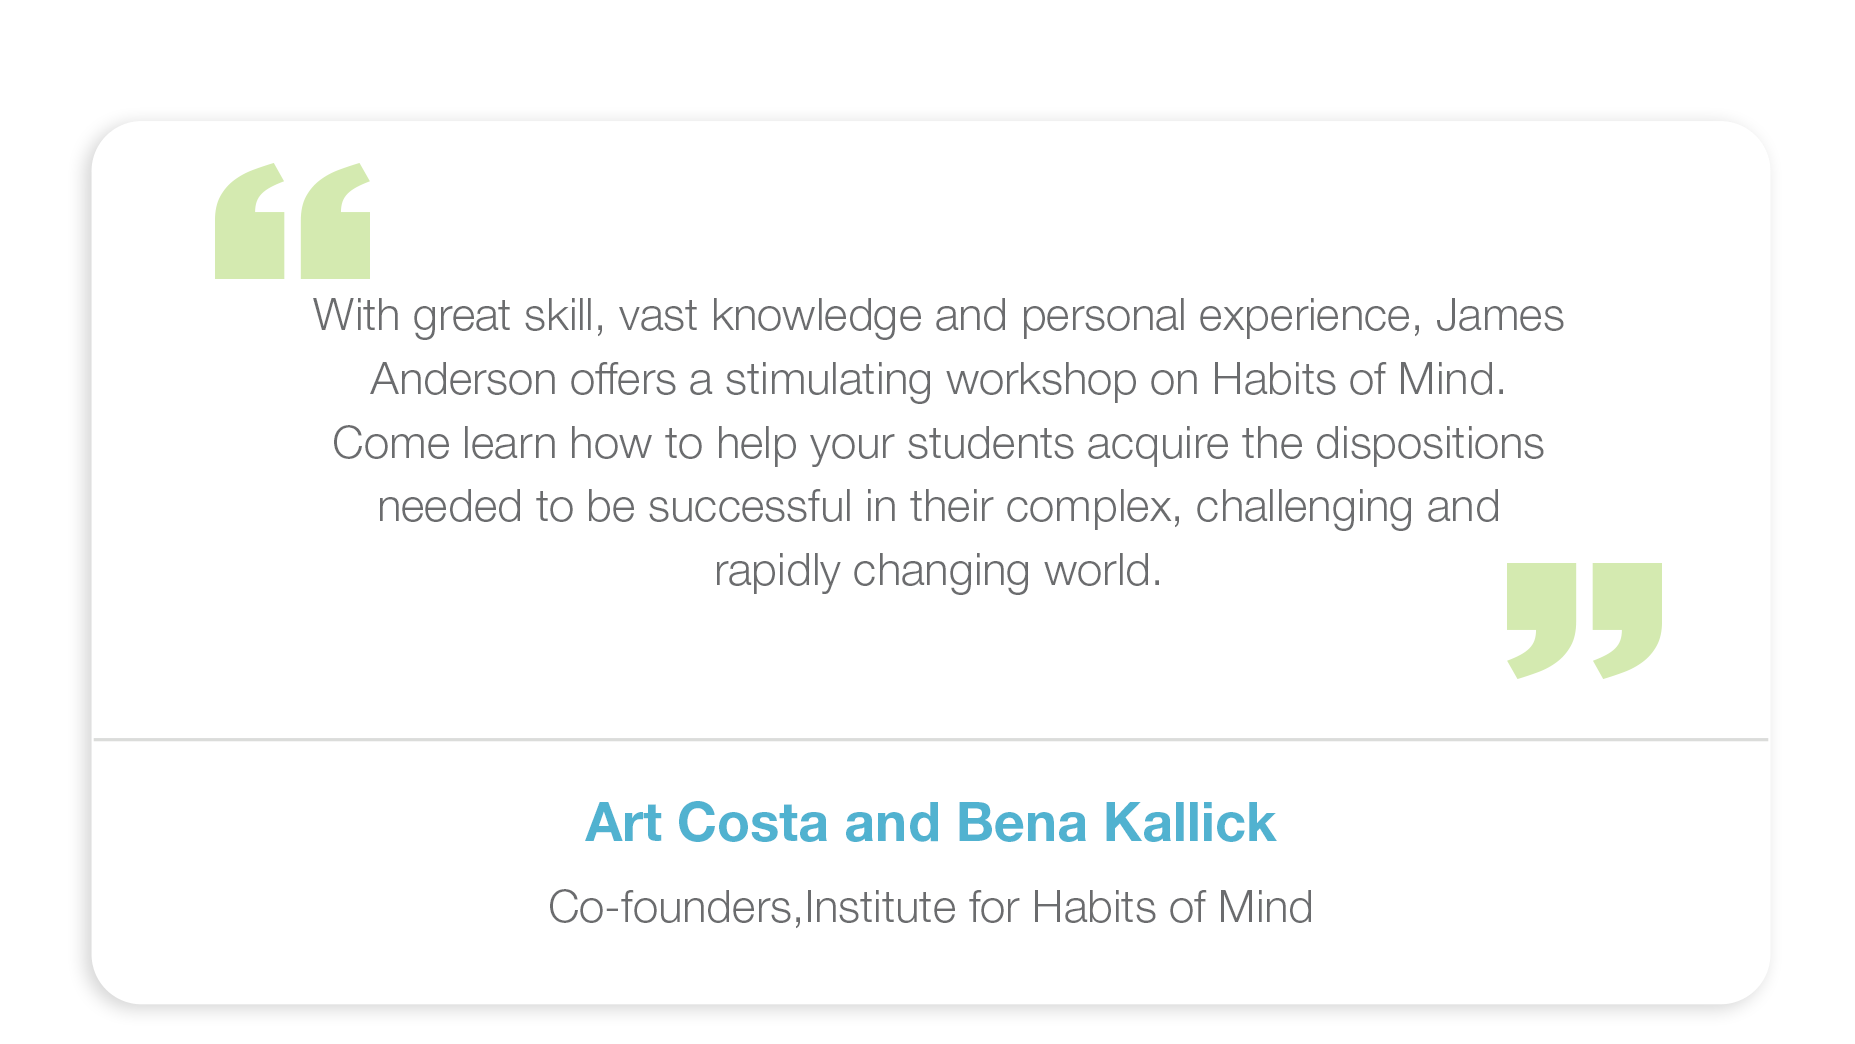 With great skill, vast knowledge and personal experience, James Anderson offers a stimulating workshop on Habits of Mind. Come learn how to help your students acquire the dispositions needed to be successful in their complex, challenging and rapidly changing world.